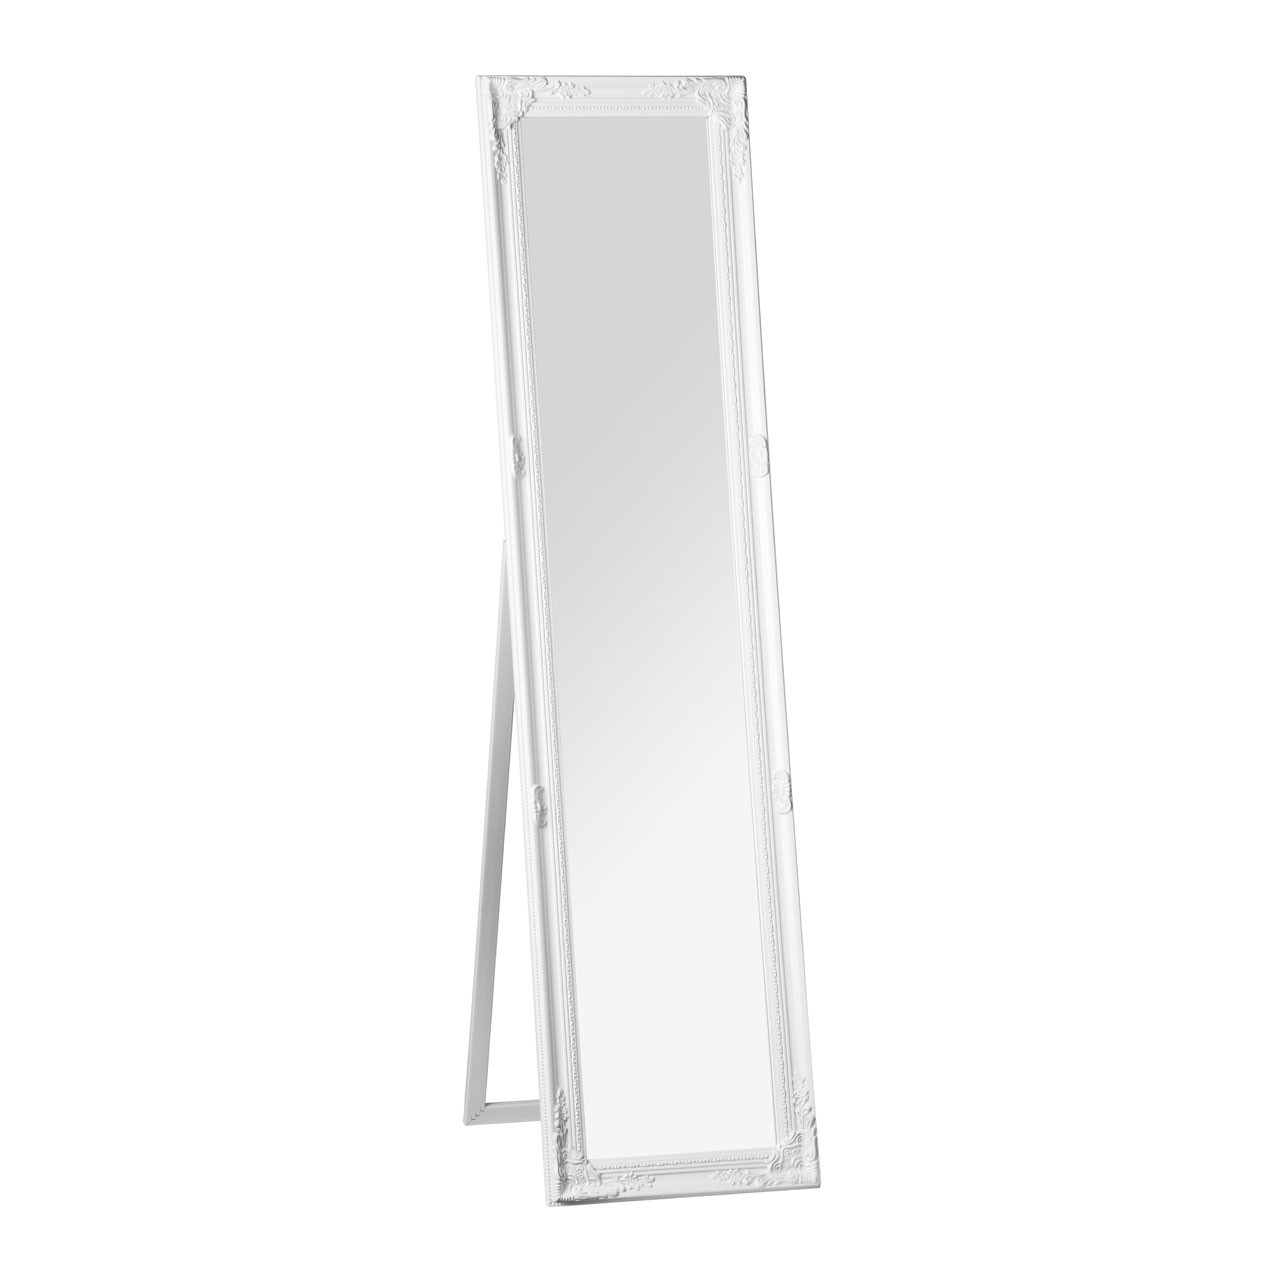 Prime Furnishing Chic Vintage Floor Standing Mirror - White Fini